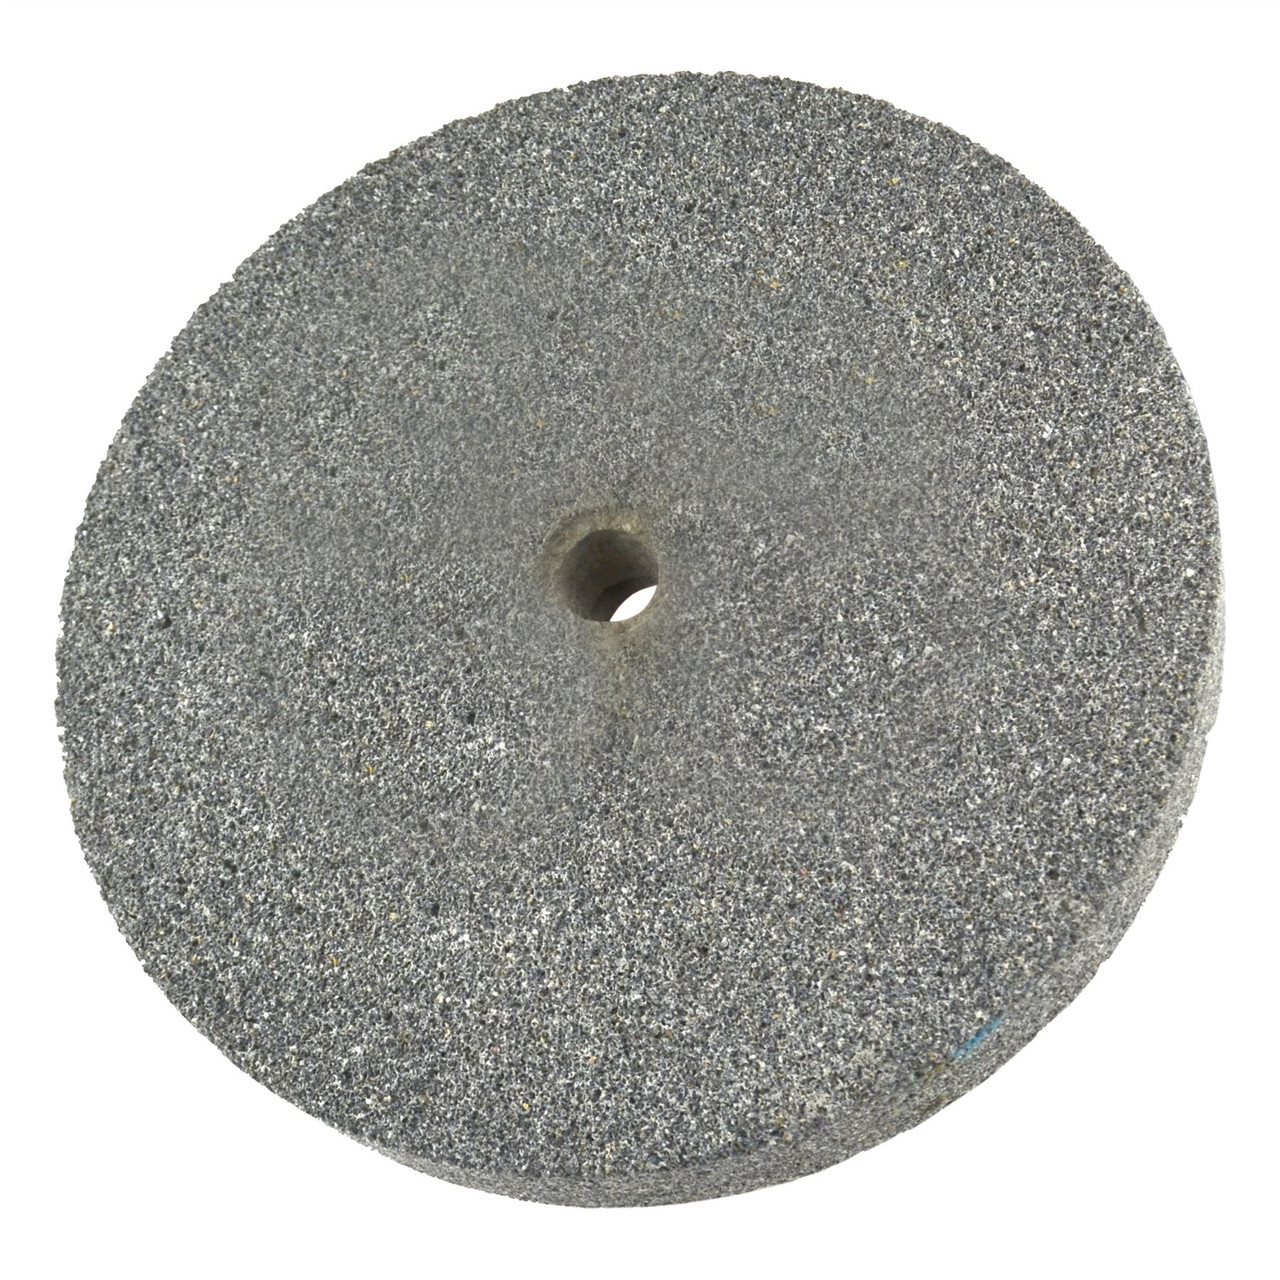 Super 6 150Mm Coarse Grinding Wheel Bench Grinder Stone 36 Grit 19Mm Thick Te864 Gmtry Best Dining Table And Chair Ideas Images Gmtryco